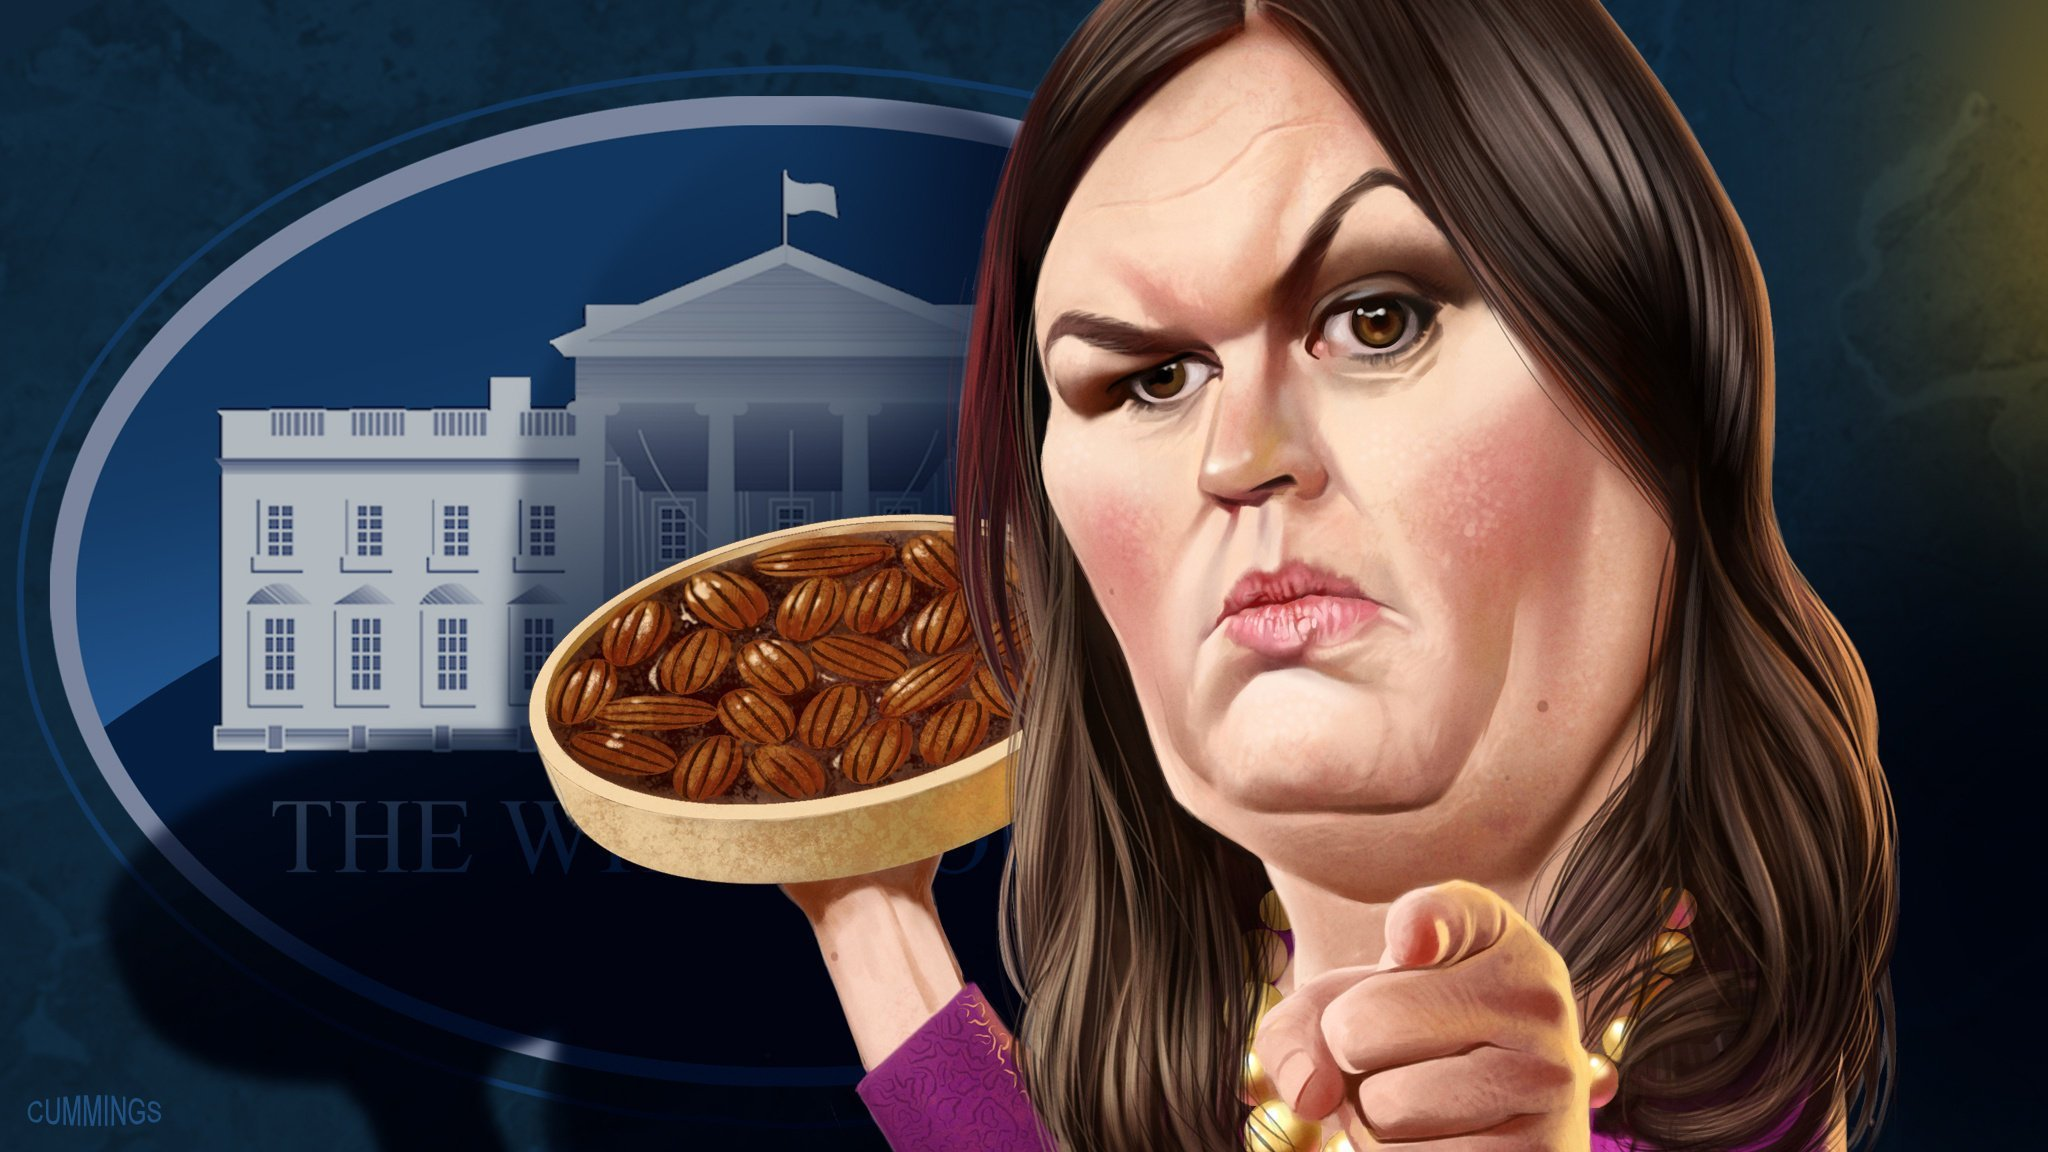 sarah huckabee sanders the white house s steely foot soldier. Black Bedroom Furniture Sets. Home Design Ideas